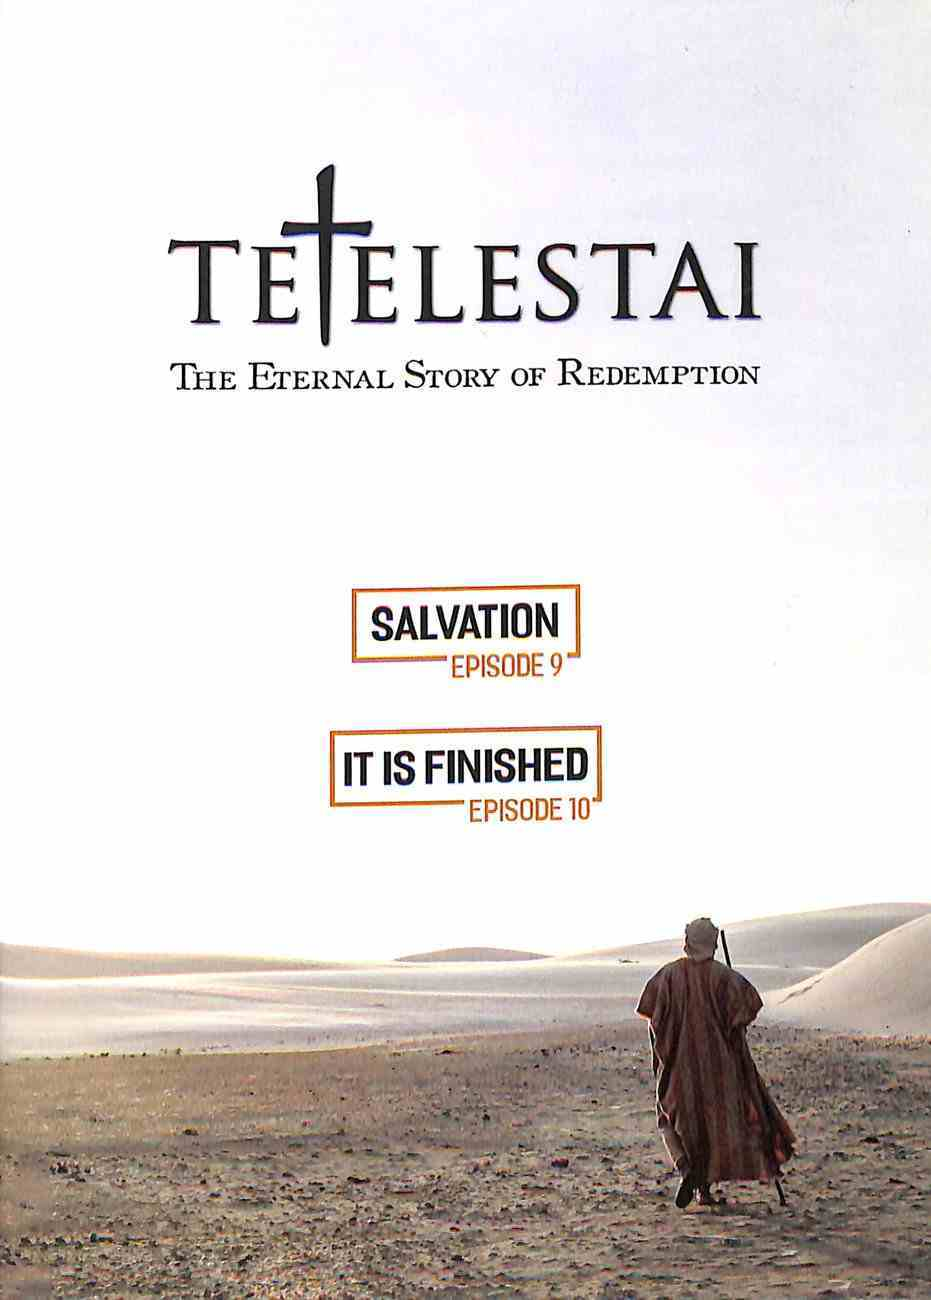 Tetelestai Episodes 9 & 10 (Salvation & It Is Finished) DVD